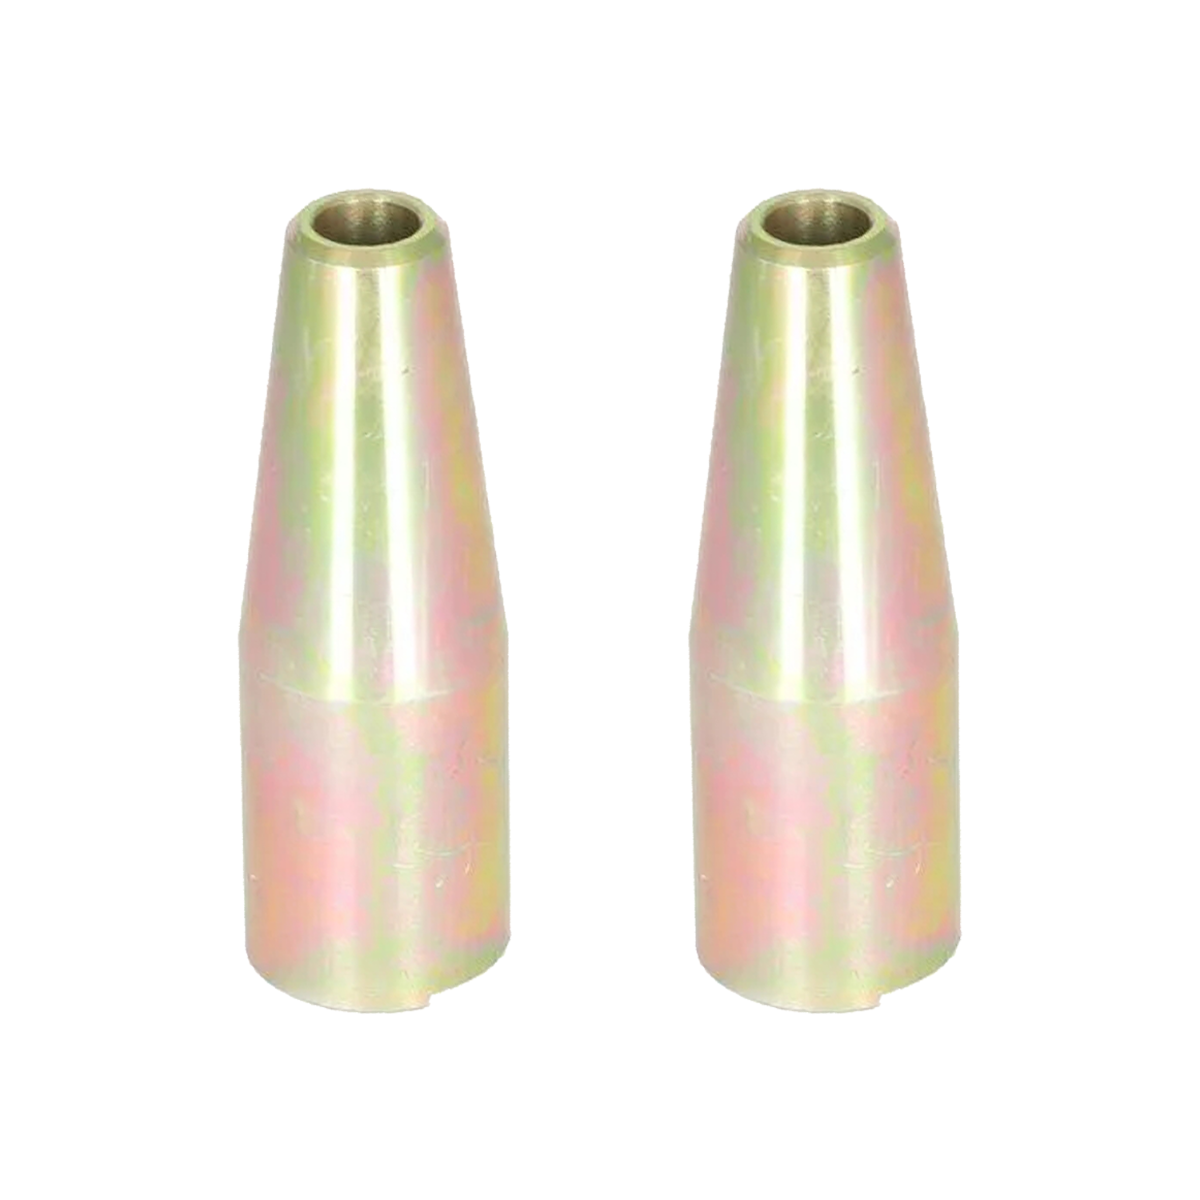 Pivot Pins 6729358 2Pcs Compatible with Bobcat Skid Steer Loaders A300 S220 S250 S300 S330 T250 T300 T320